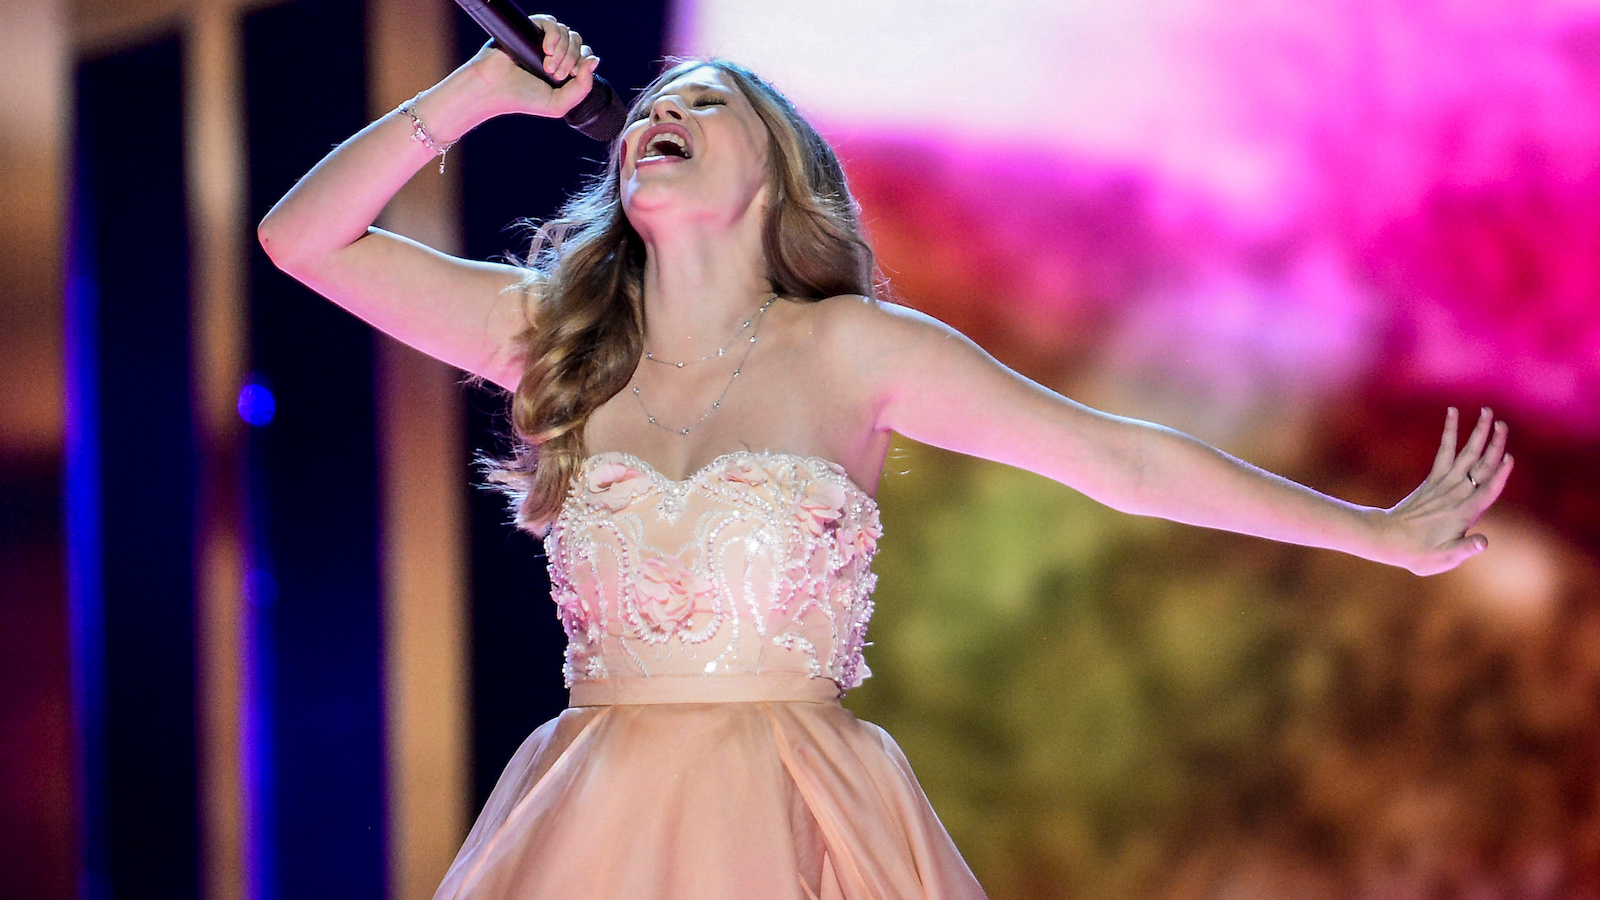 """Zoe representing Austria performs with the song """"Loin d'ici"""" during the Eurovision Song Contest final at the Ericsson Globe Arena in Stockholm, Sweden, May 14, 2016. TT News Agency/Maja Suslin/via REUTERS ?ATTENTION EDITORS - THIS IMAGE WAS PROVIDED BY A THIRD PARTY. FOR EDITORIAL USE ONLY. SWEDEN OUT. NO COMMERCIAL OR EDITORIAL SALES IN SWEDEN. - RTSEBGP"""